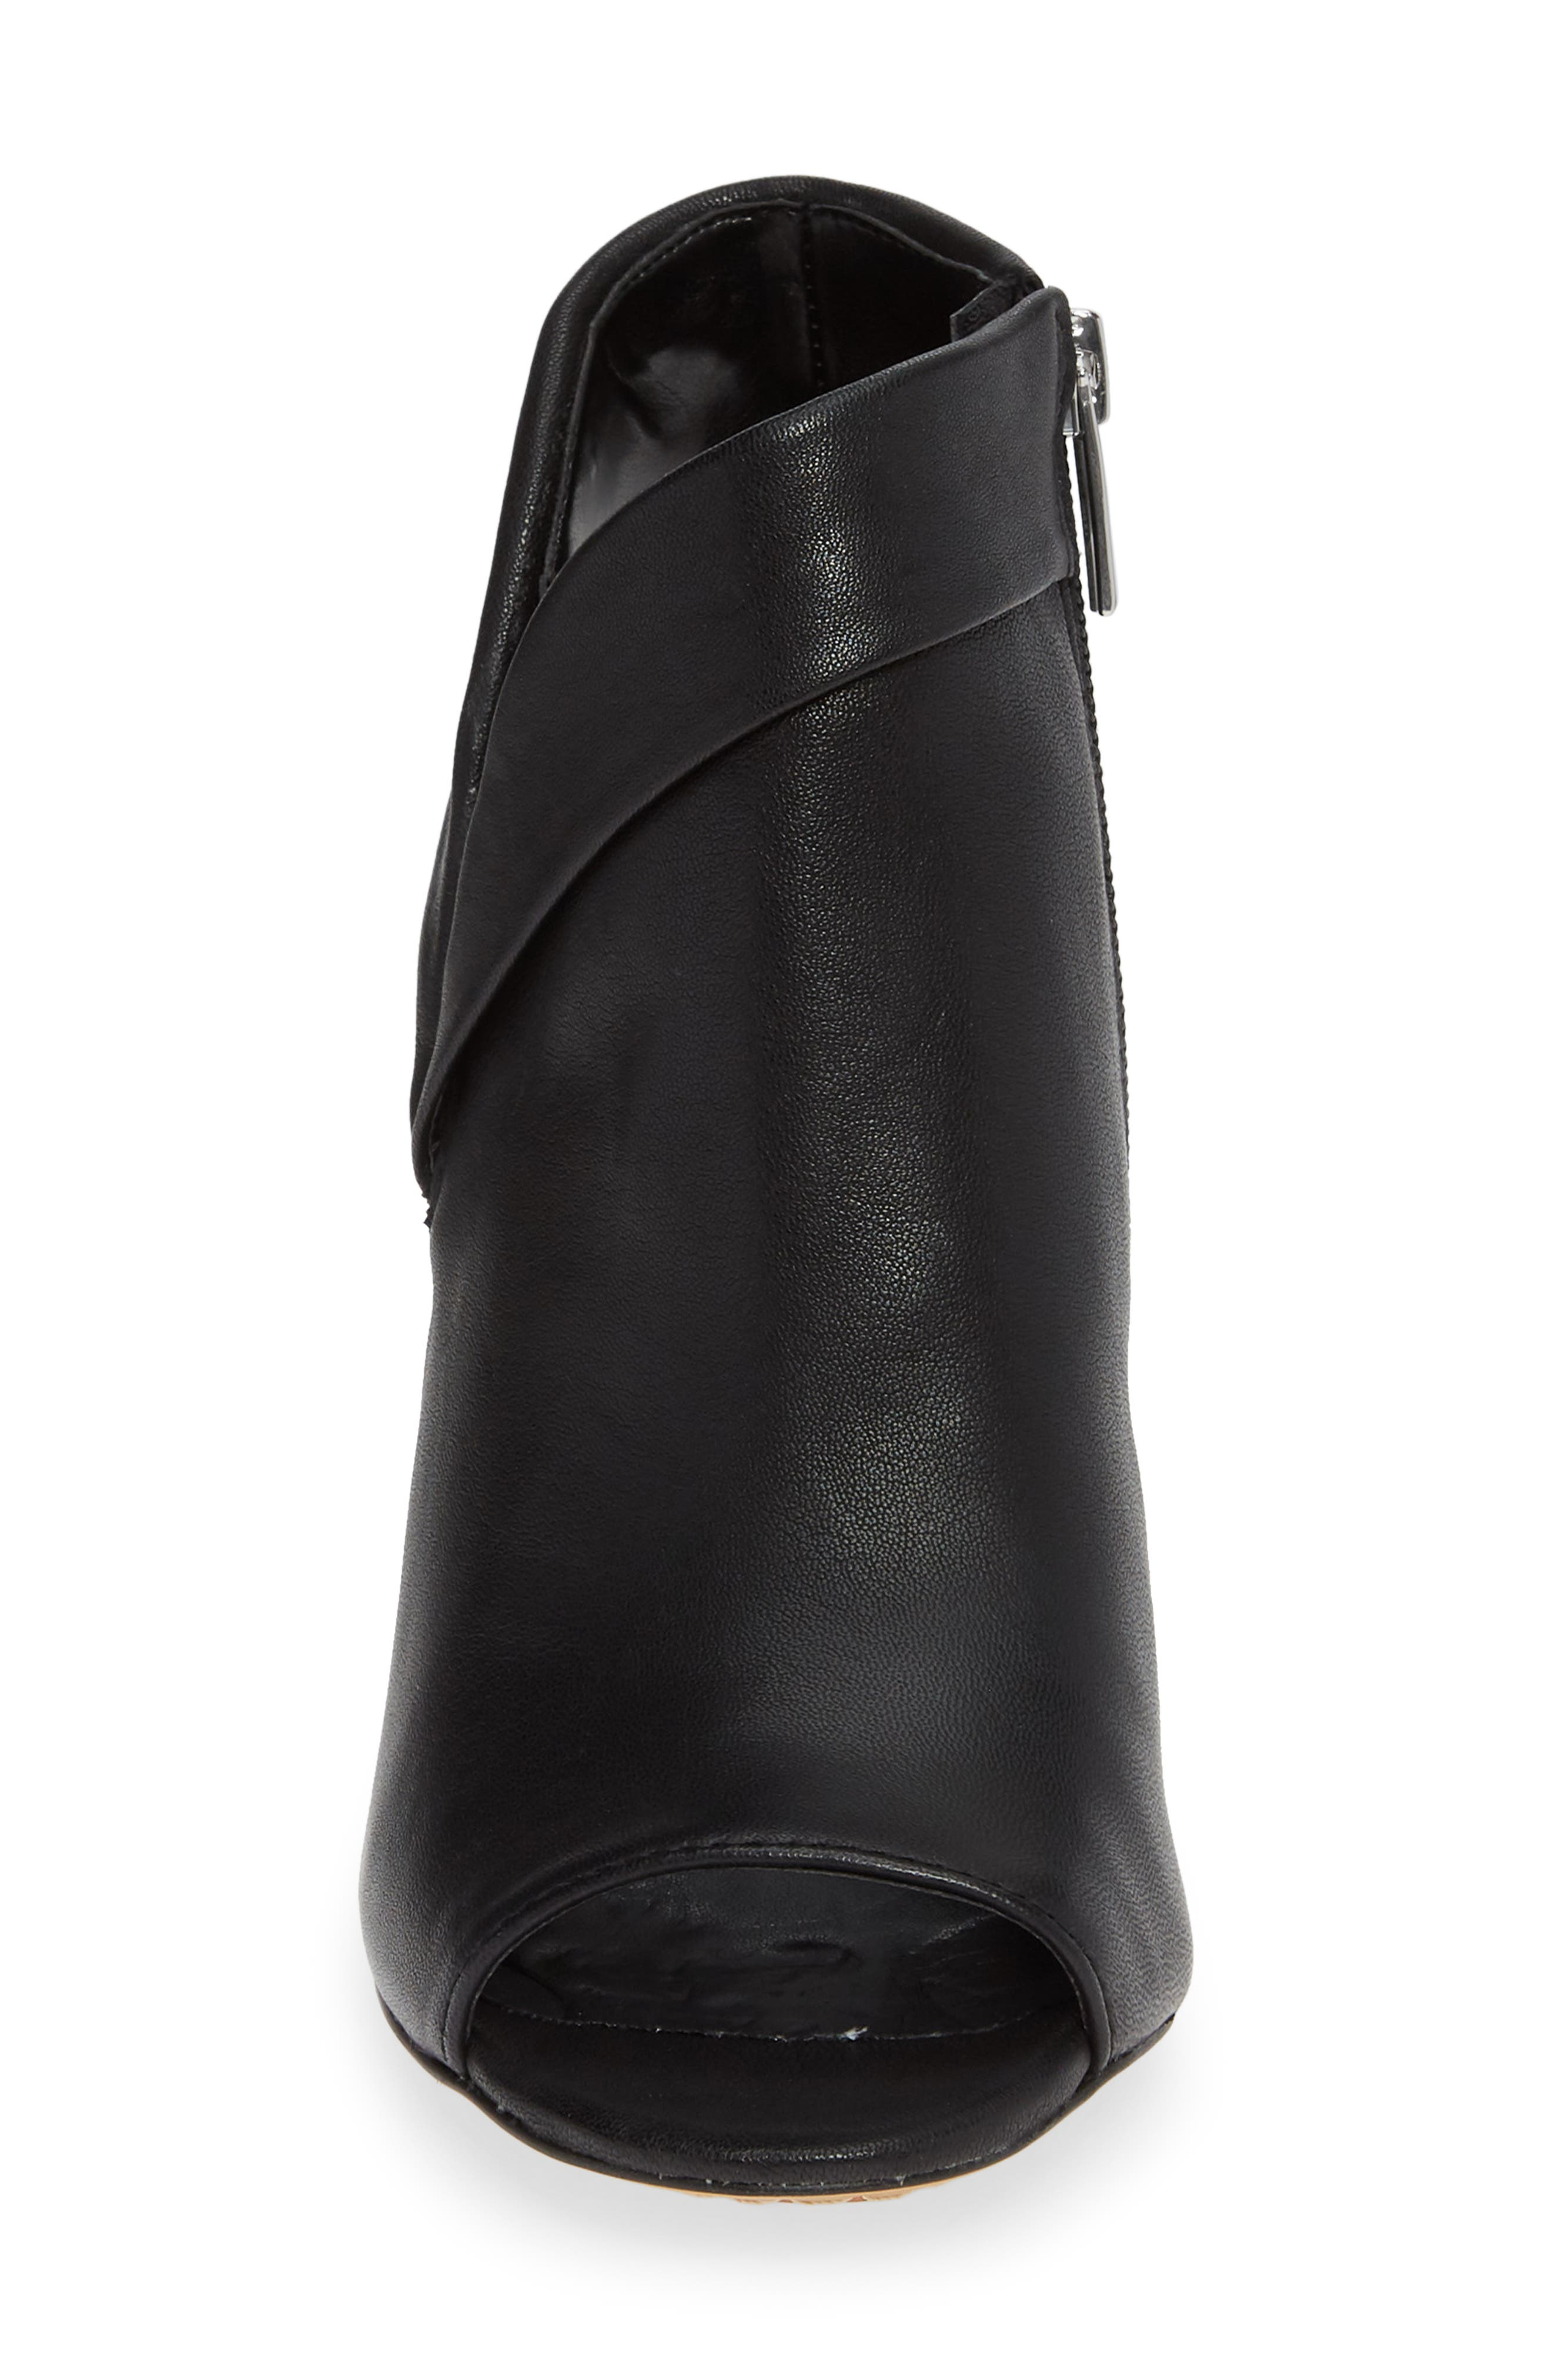 VINCE CAMUTO, Cholia Asymmetrical Sandal Bootie, Alternate thumbnail 4, color, BLACK LEATHER